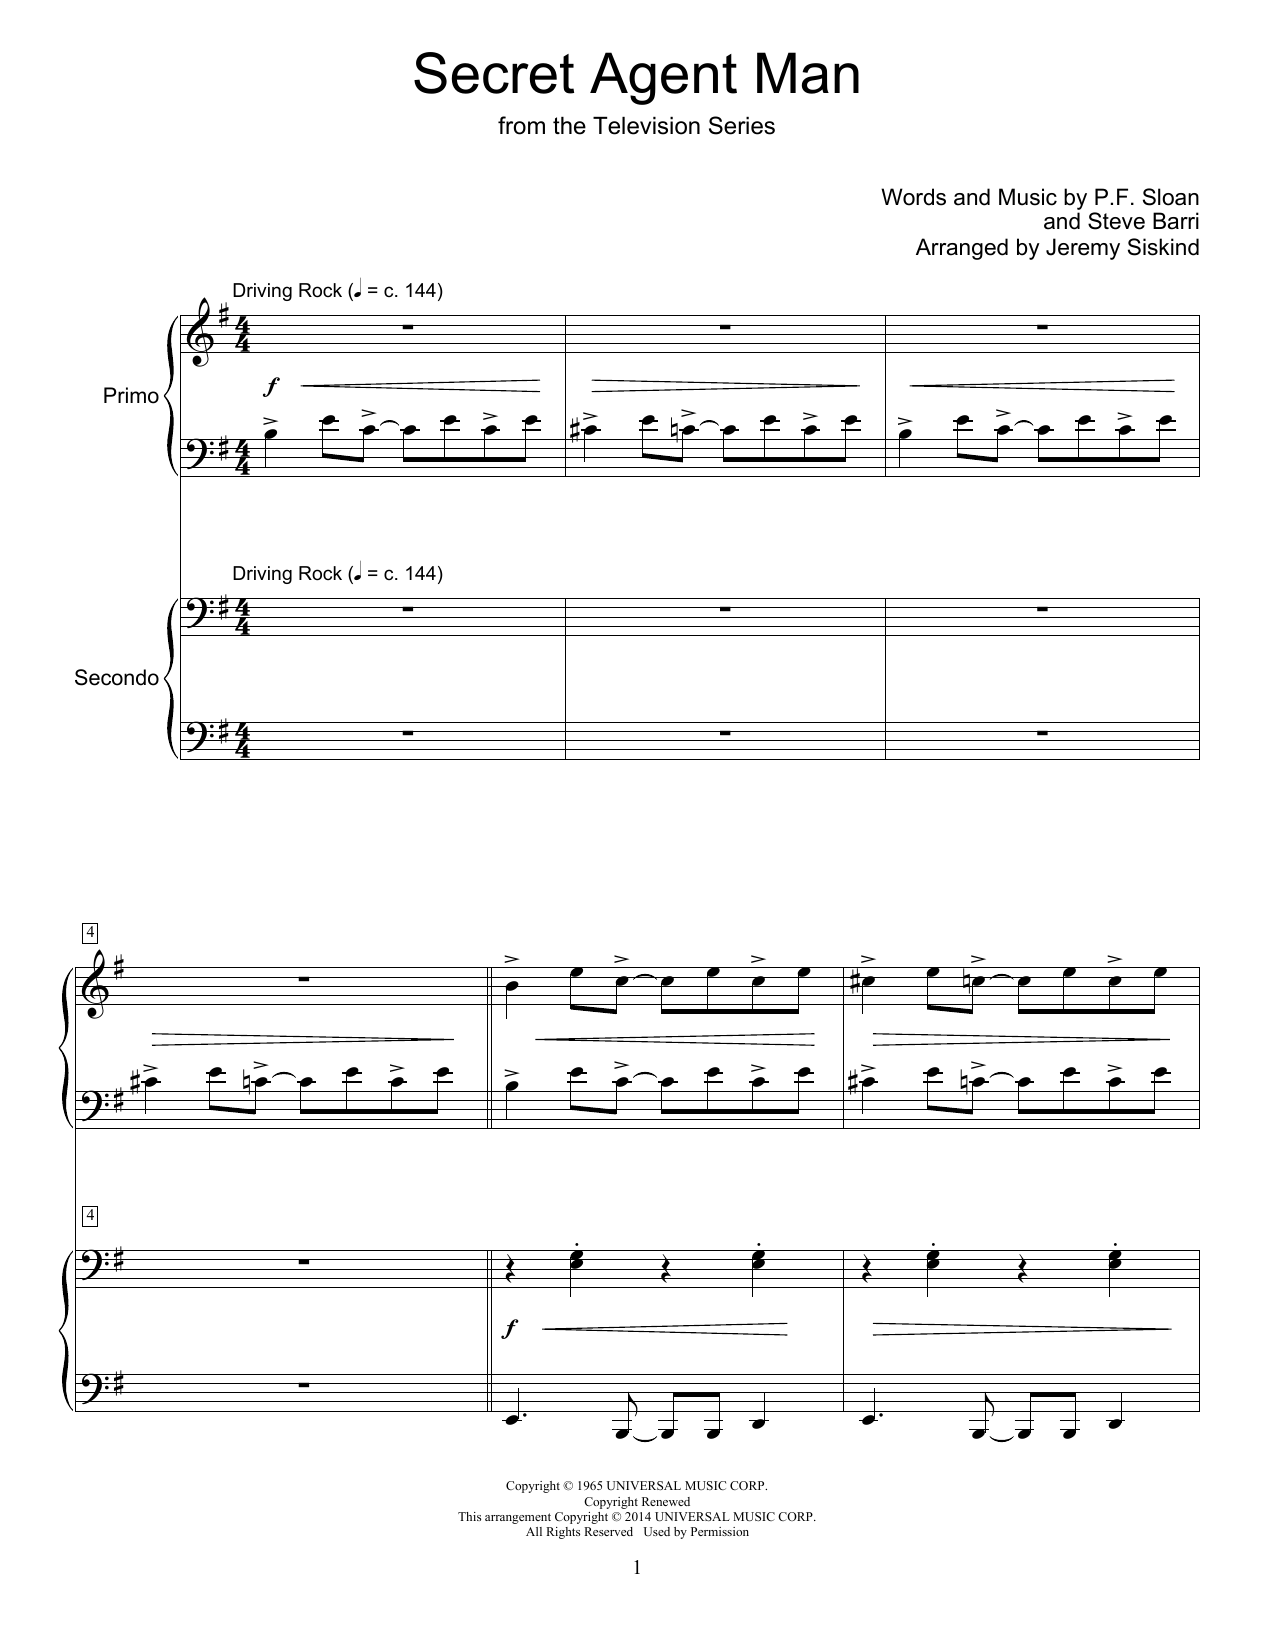 Secret Agent Man Sheet Music